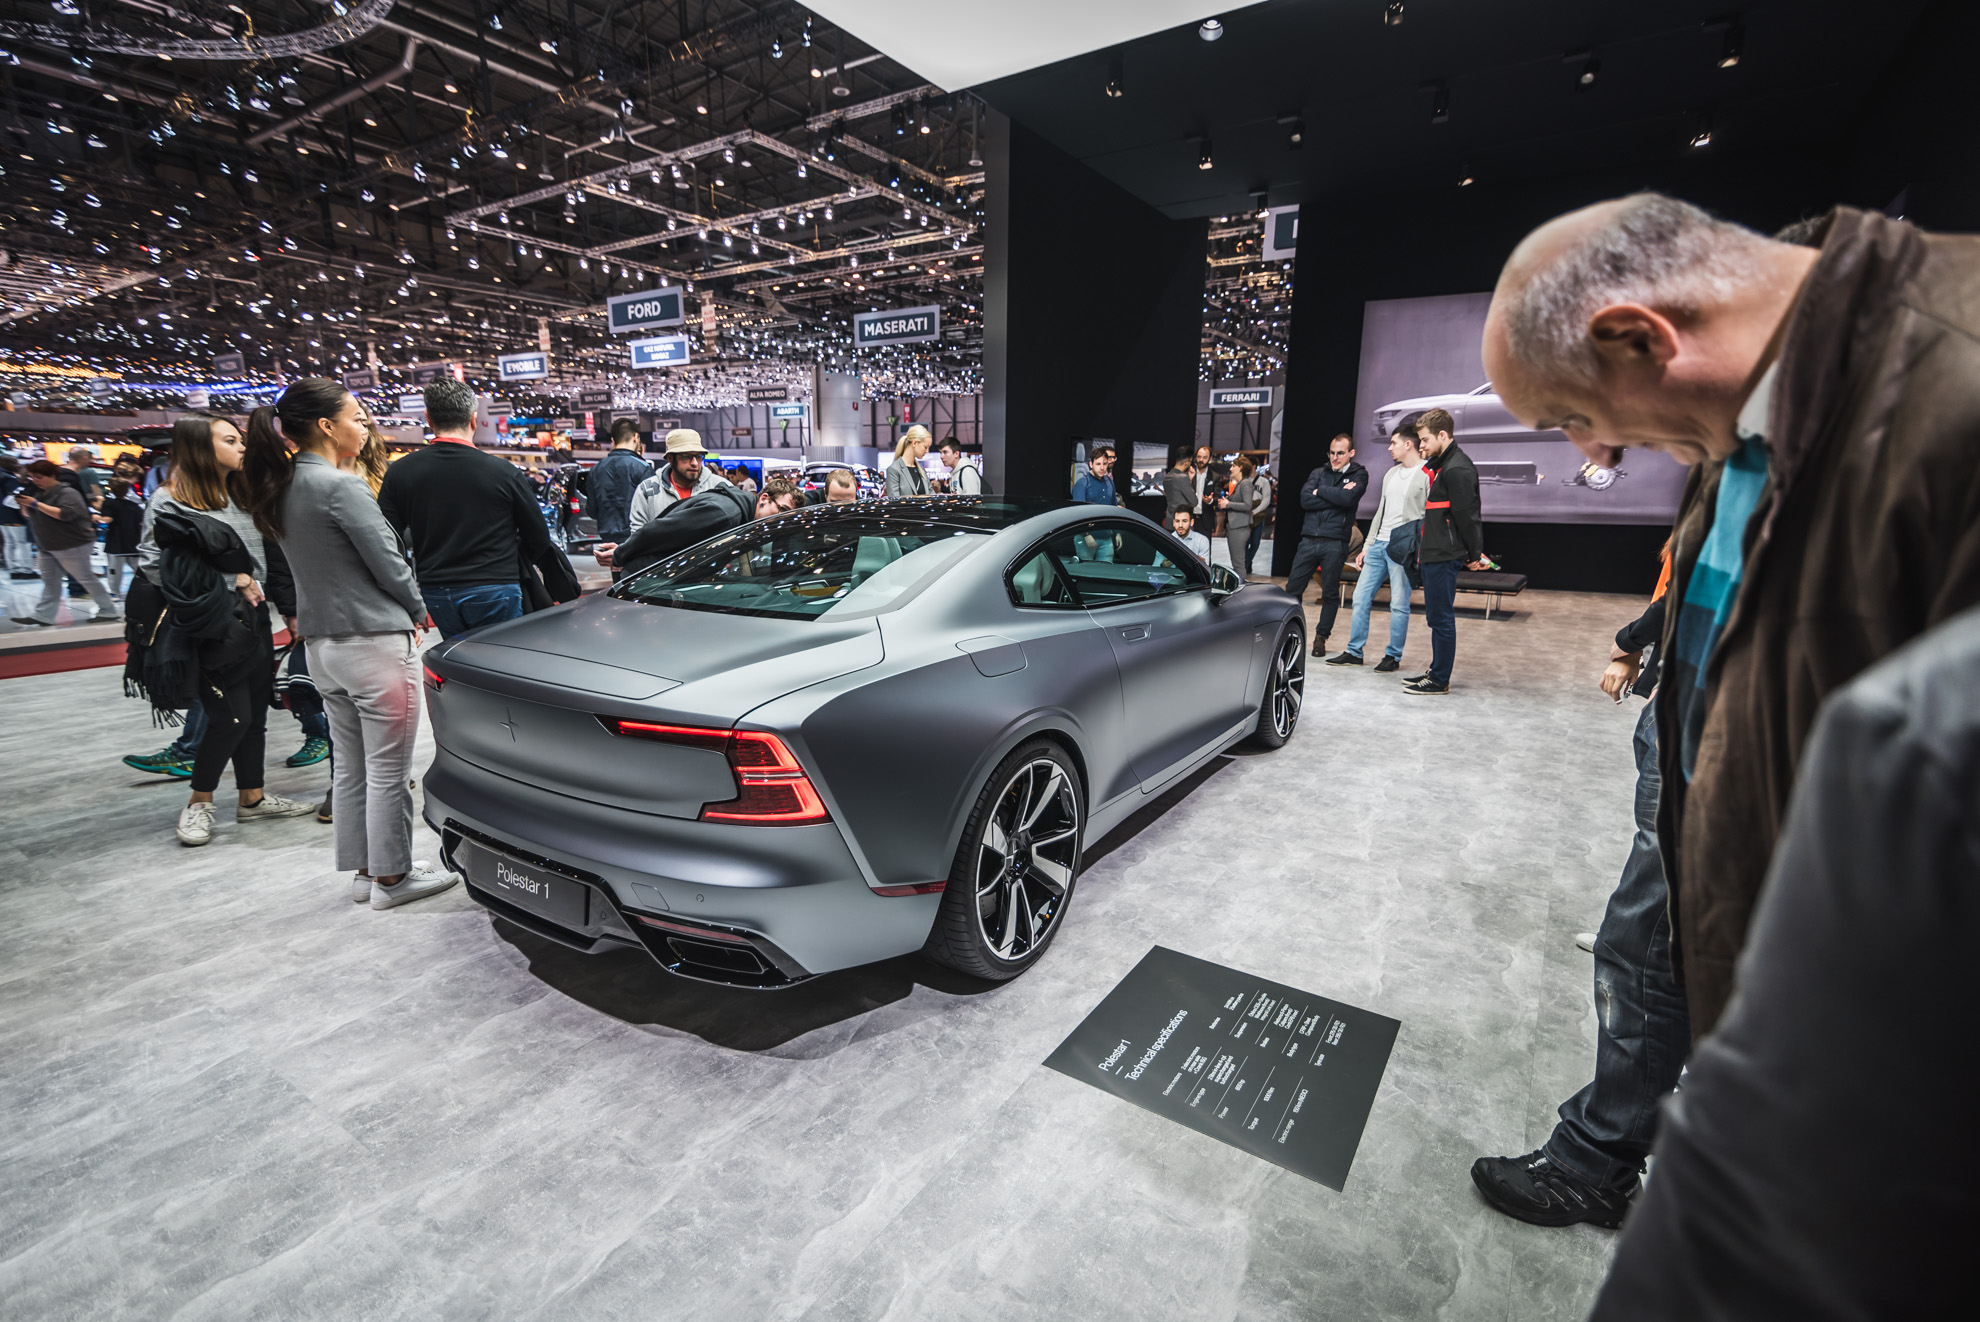 geneva-international-motor-show-igors-sinitsins-17